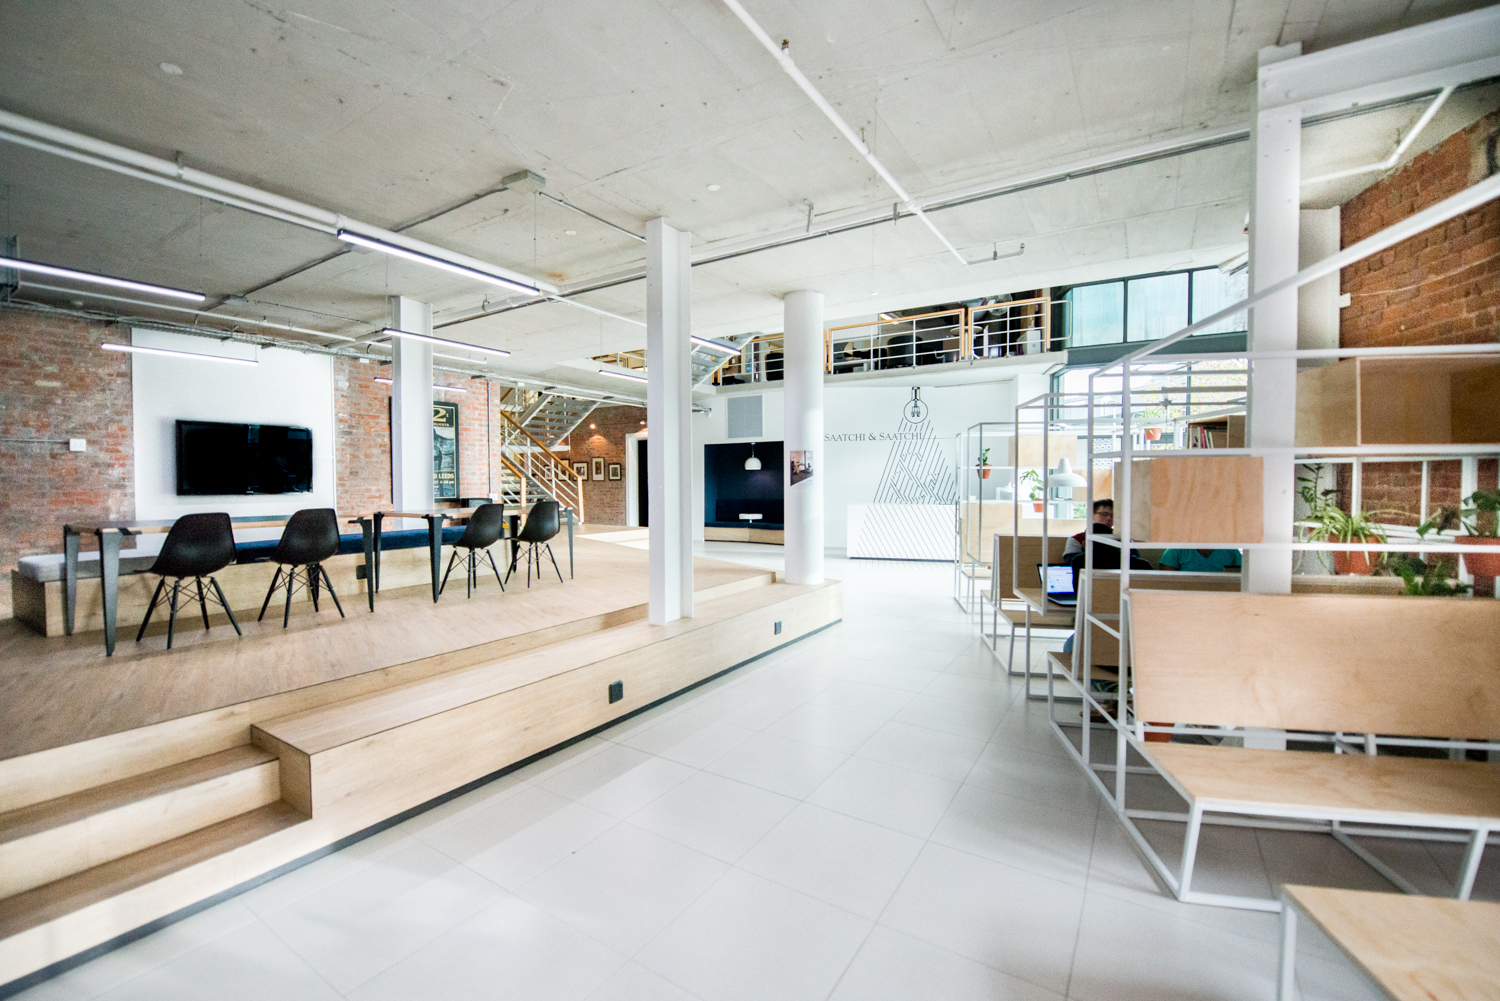 architecture simple office room dsc5225 inhouse brand architects bring striking simple modern